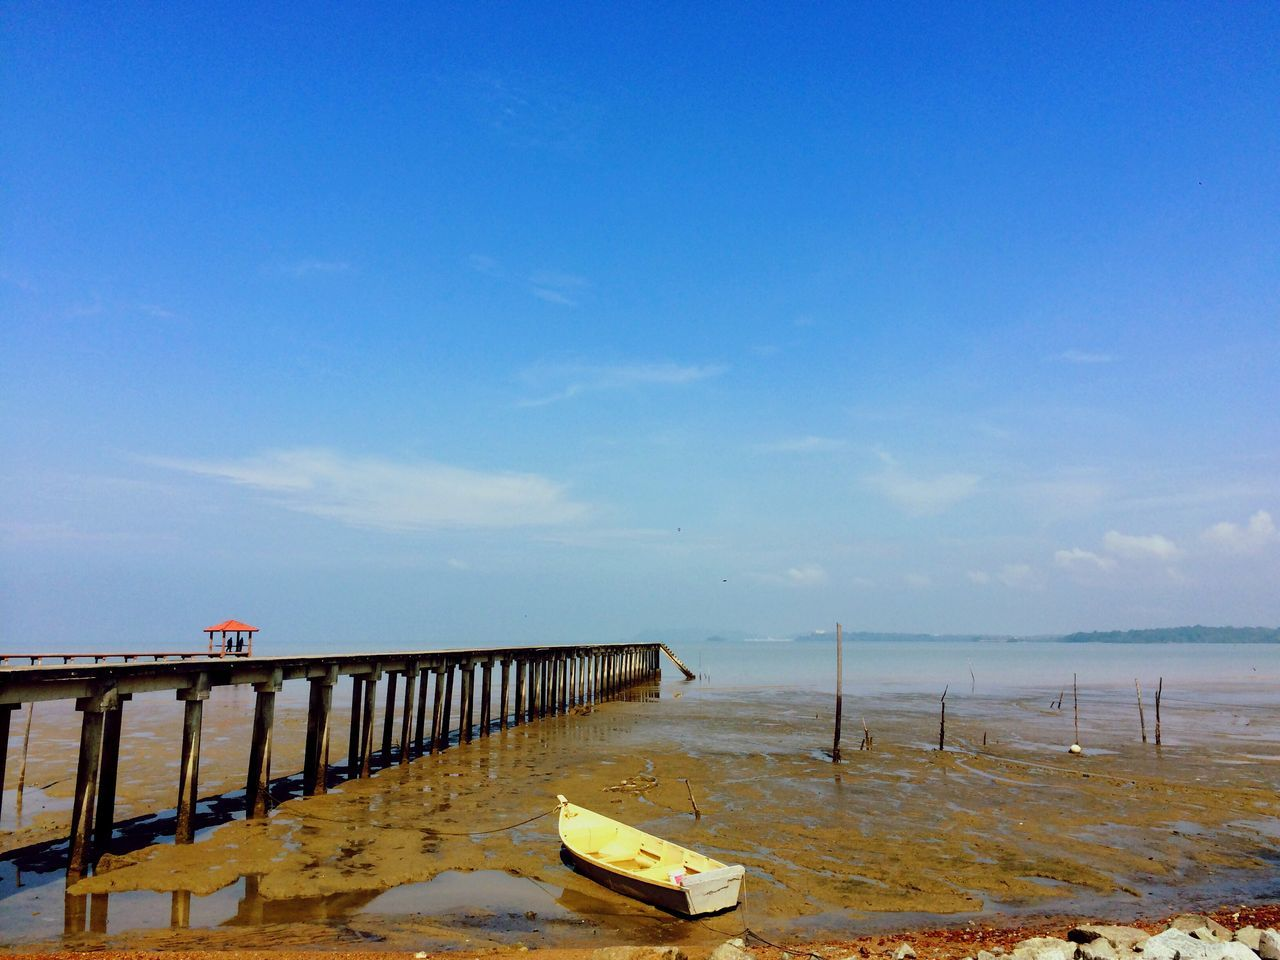 sky, water, nature, outdoors, day, tranquility, scenics, sea, no people, beauty in nature, horizon over water, architecture